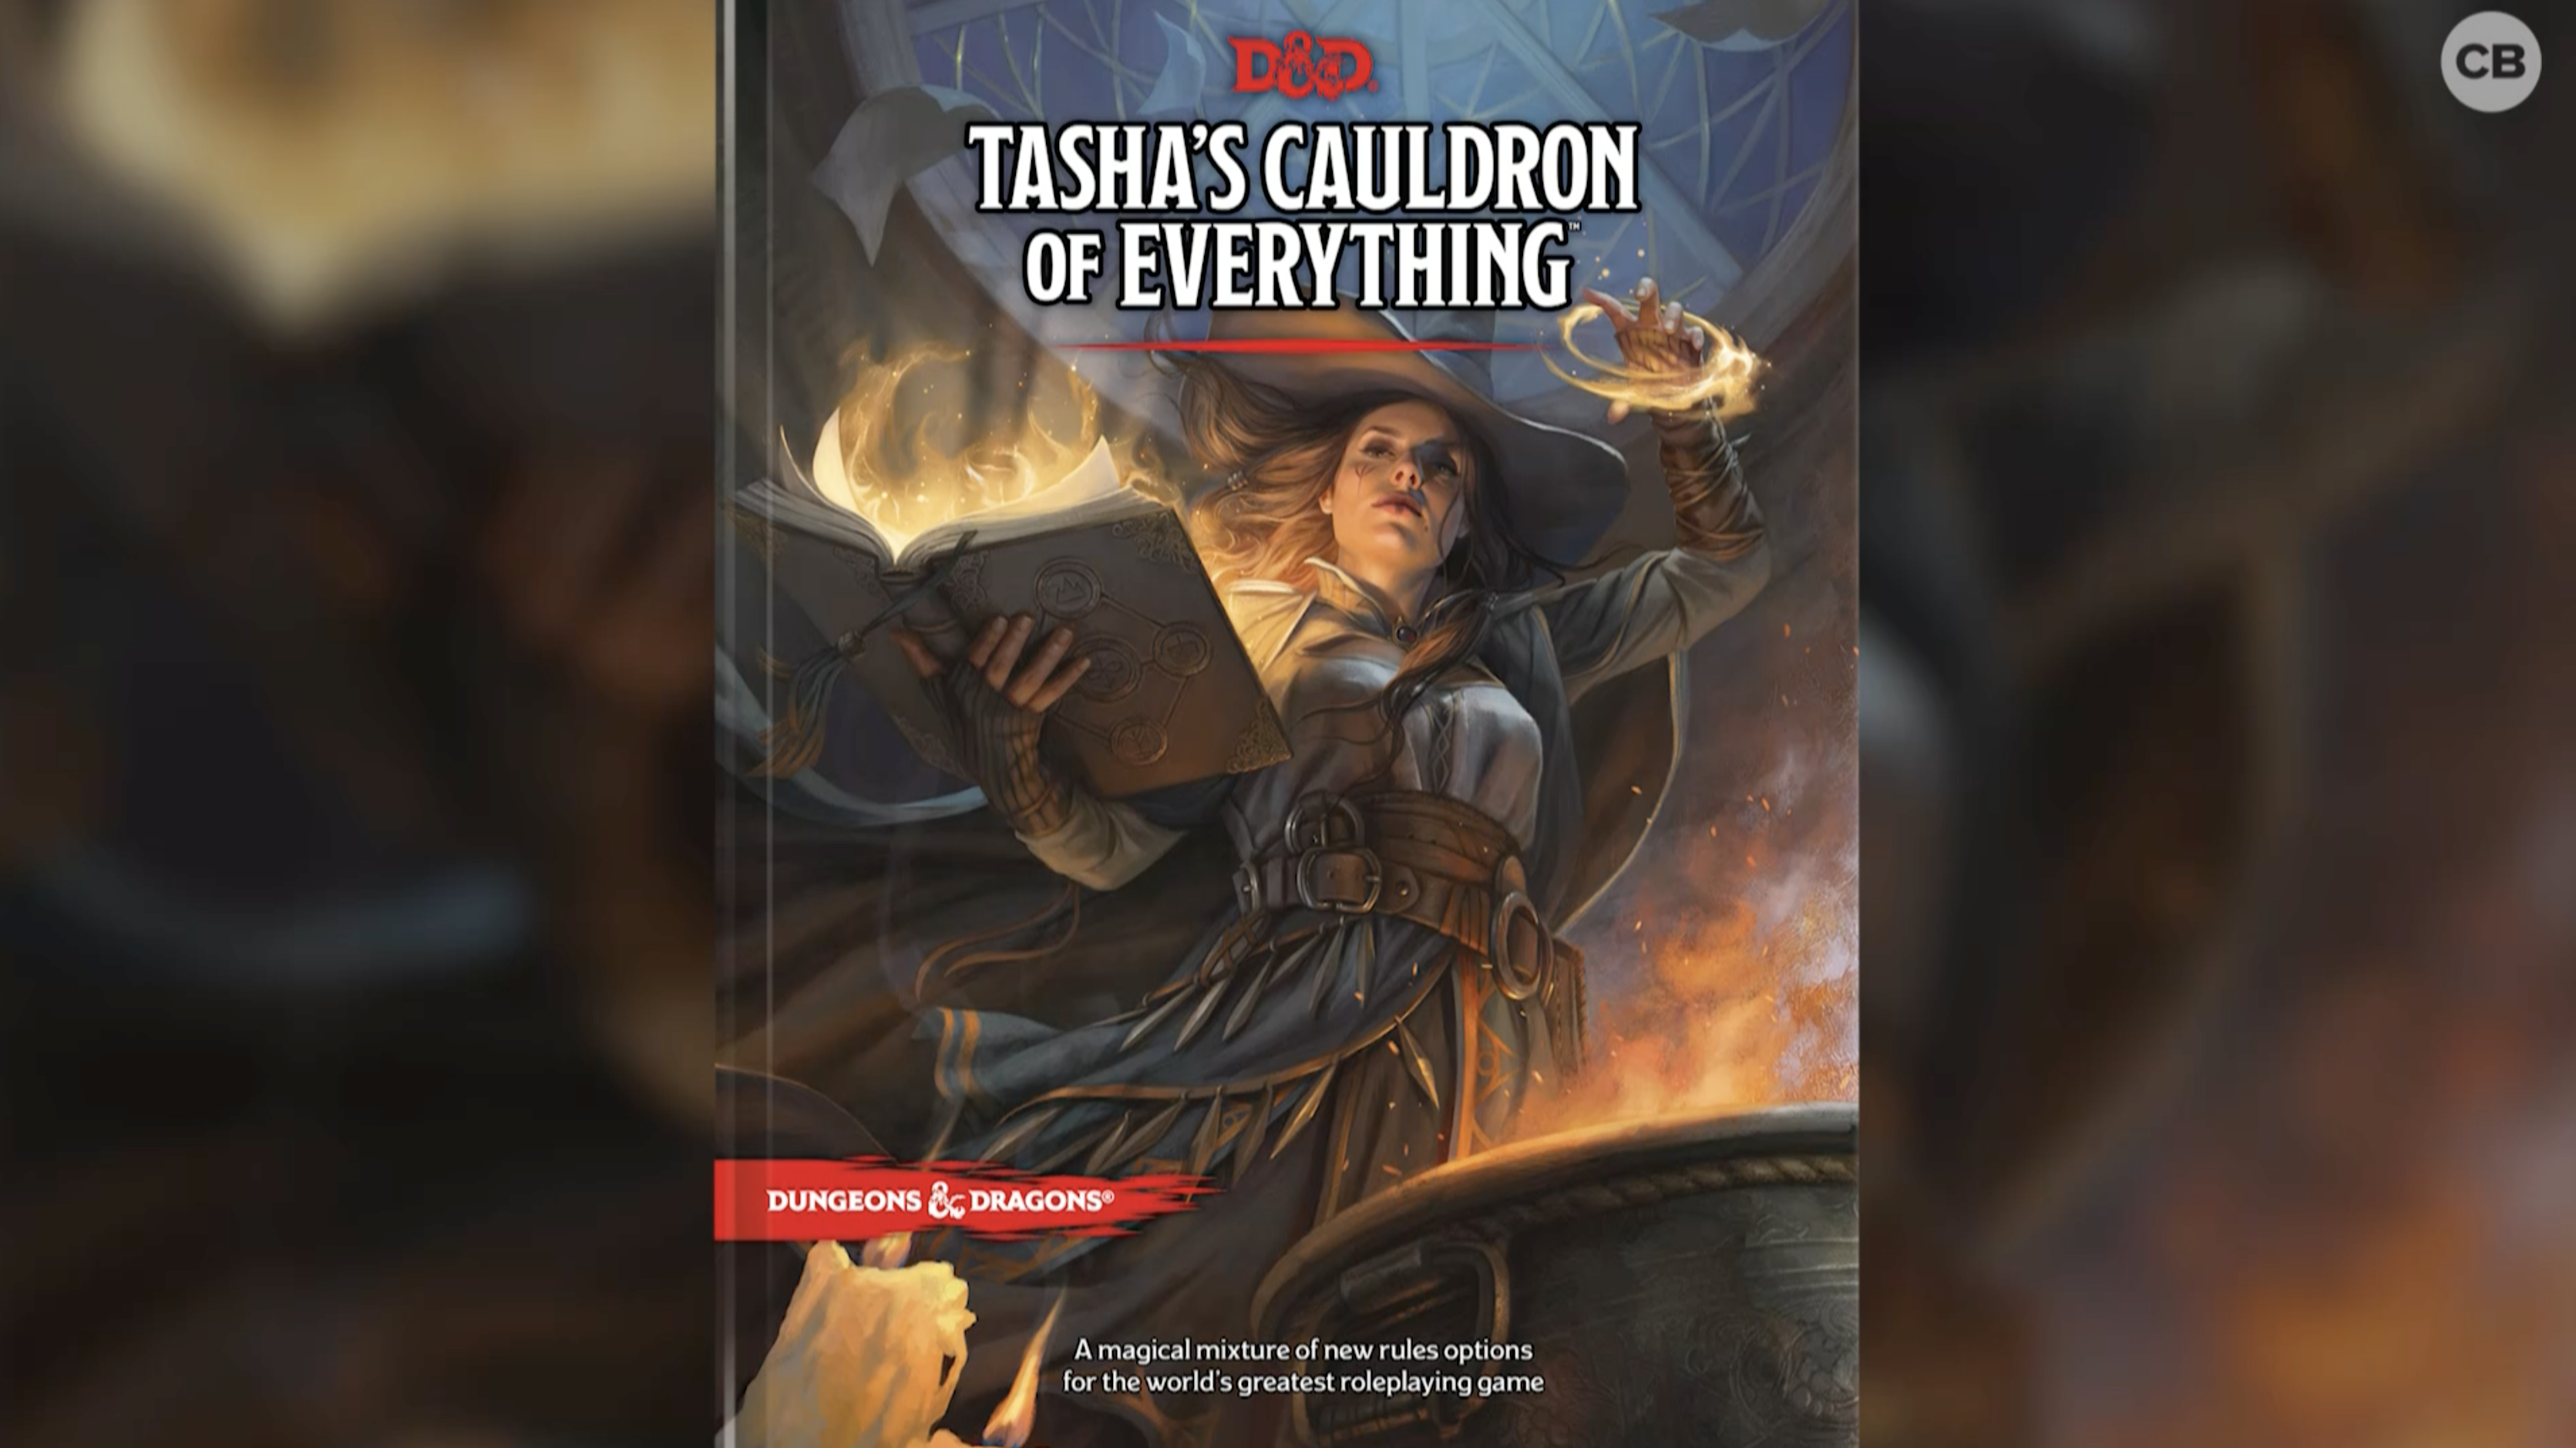 Dungeons & Dragons - Tasha's Cauldron of Everything Opens Up the World of D&D